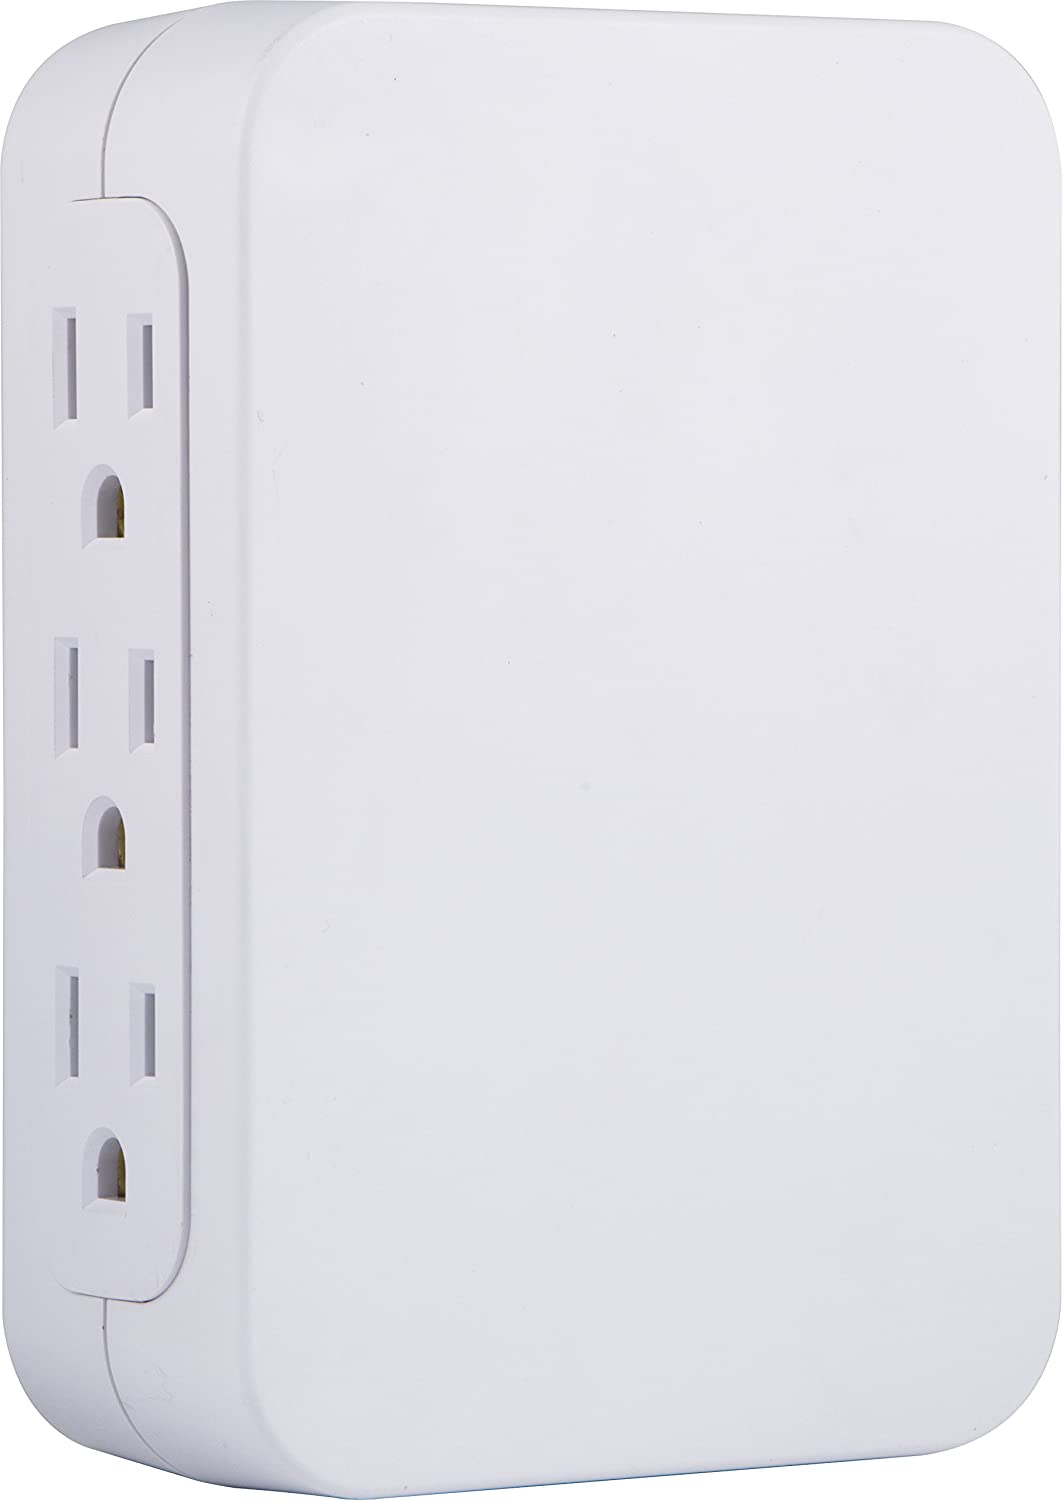 GE Pro 6 Outlet Wall Tap Surge Protector, Side Access, Power Outlet Adapter, 3 Prong Wall Mount, Plug In Outlet Extender, 1200 Joules, Warranty, UL Listed, White, 10353